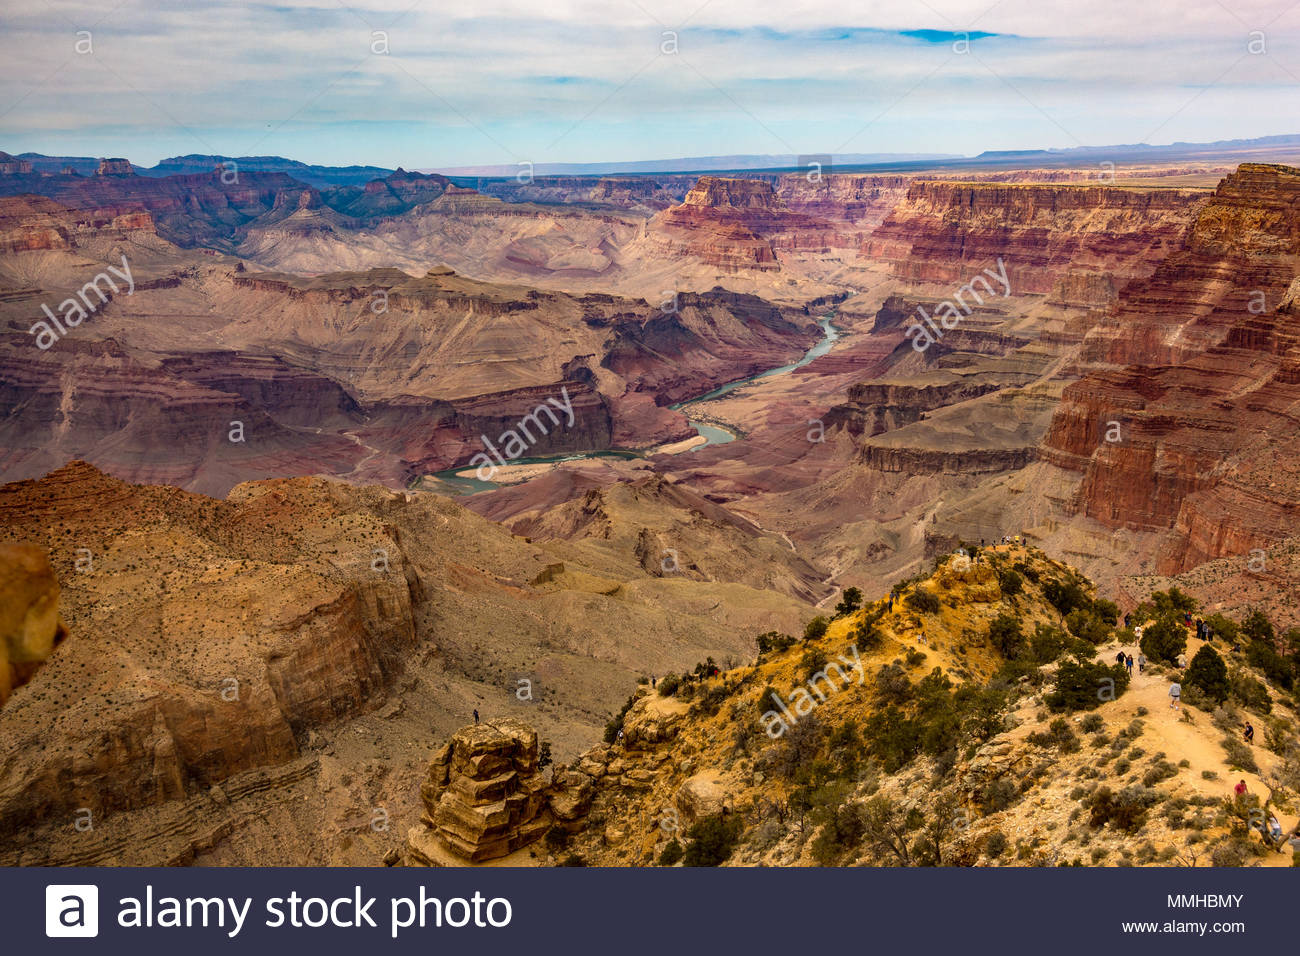 View from Southern Rim of Grand Canyon and Colorado River in Grand Canyon National Park, Arizona, USA Stock Photo